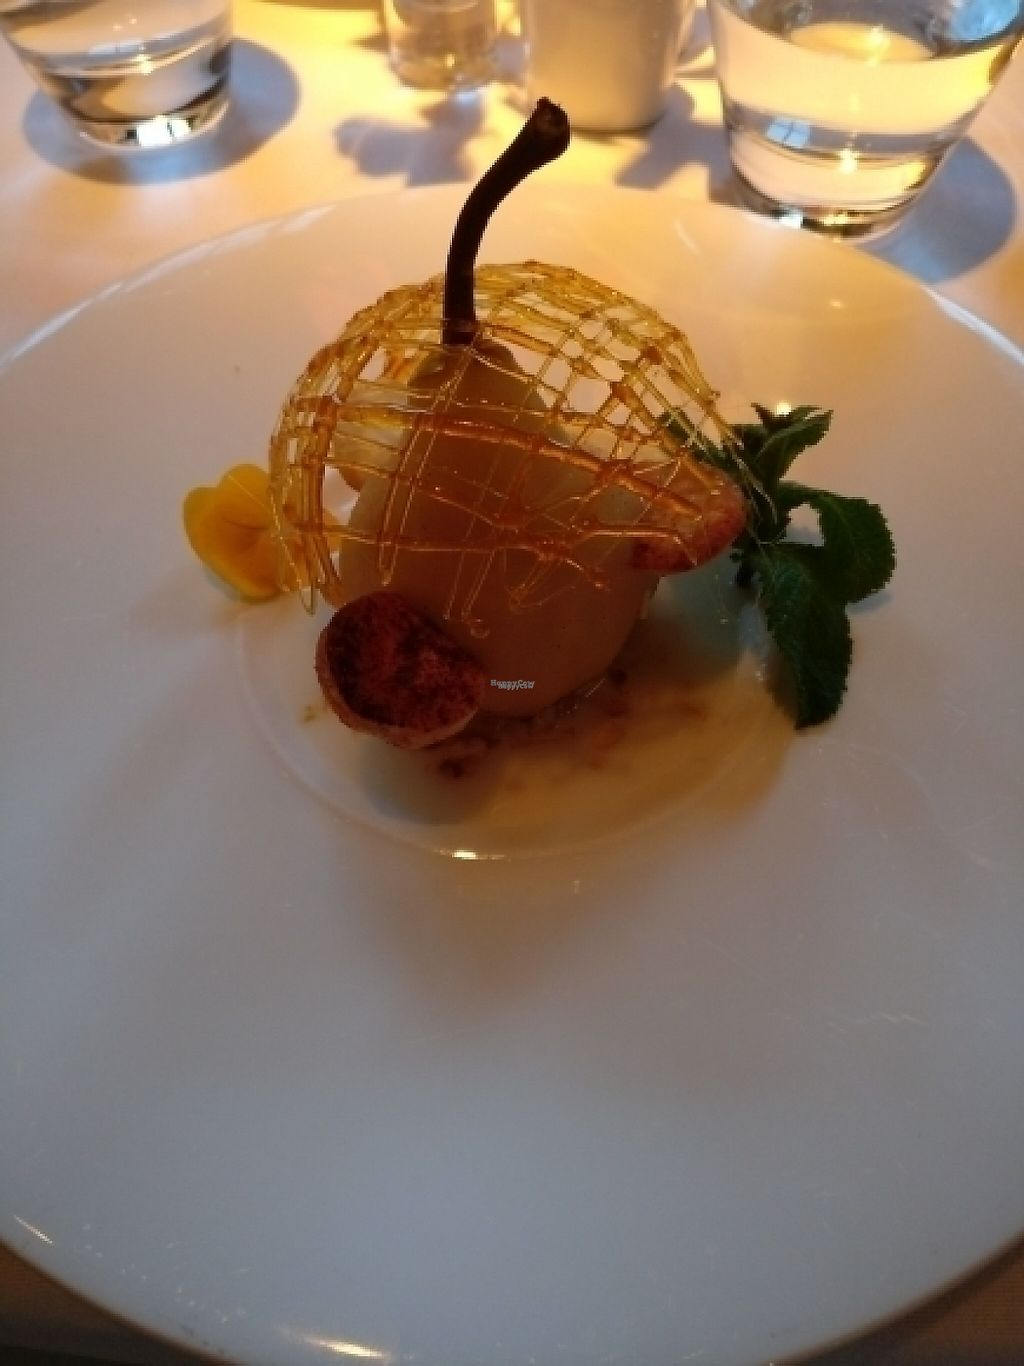 """Photo of Fellinis  by <a href=""""/members/profile/quench"""">quench</a> <br/>vegan poached pear <br/> April 24, 2017  - <a href='/contact/abuse/image/18792/251955'>Report</a>"""